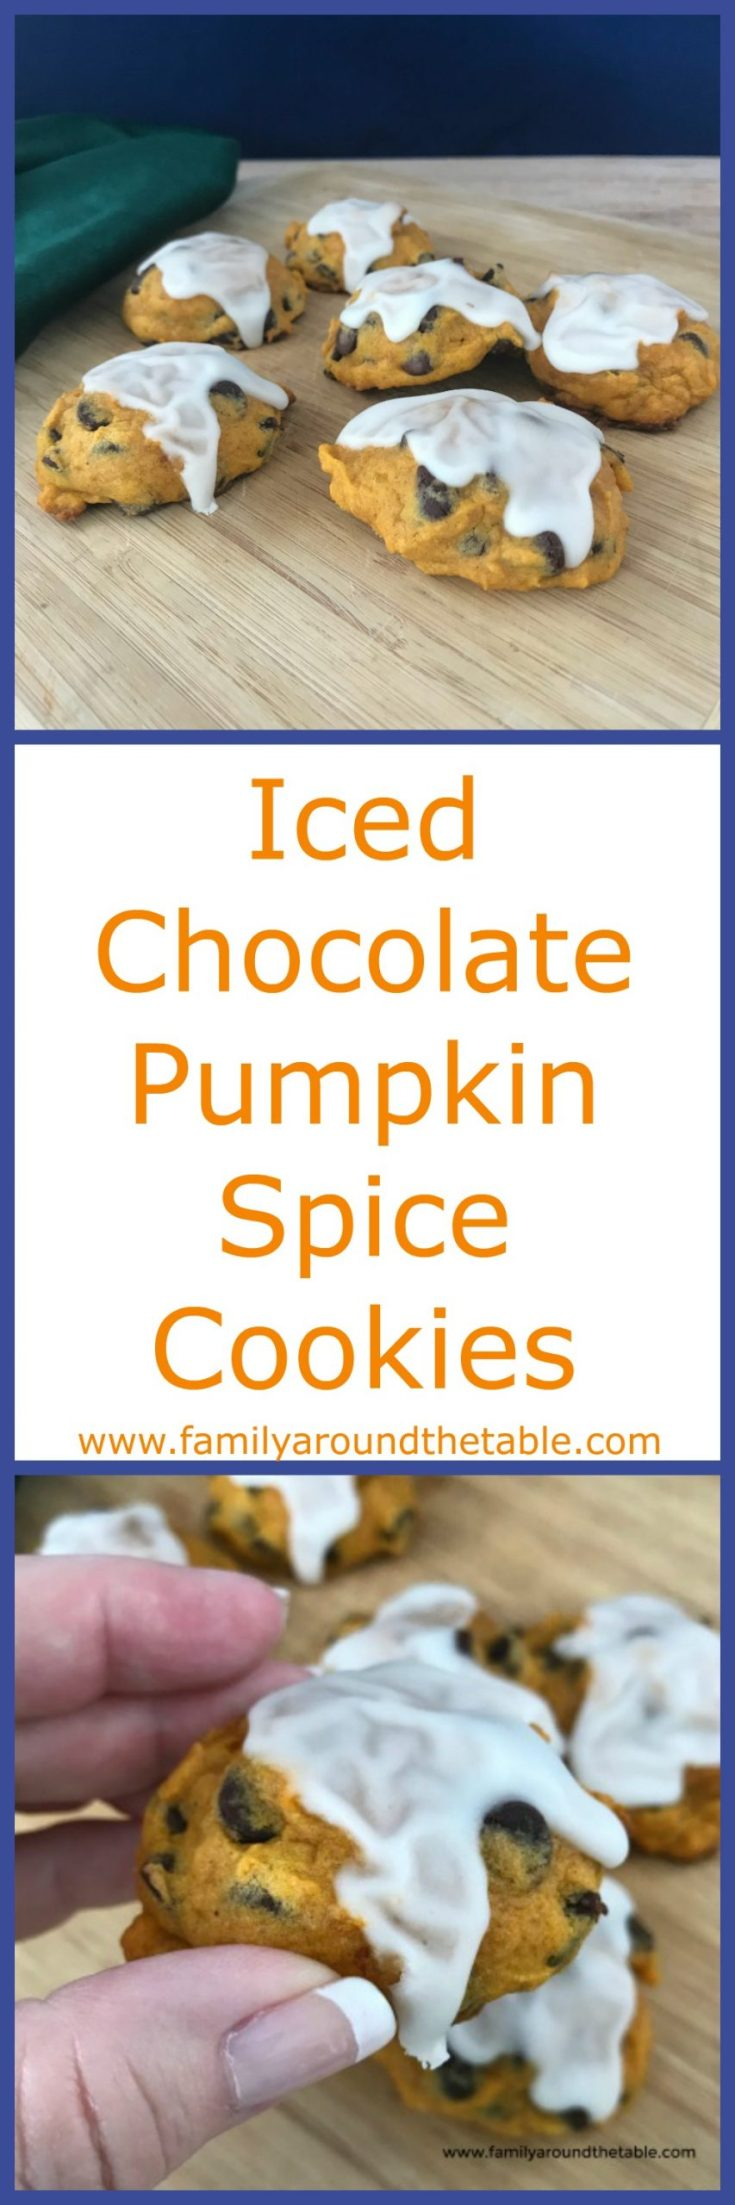 Iced chocolate pumpkin spice cookies are cake-like cookie that's not too sweet. #ChristmasCookies